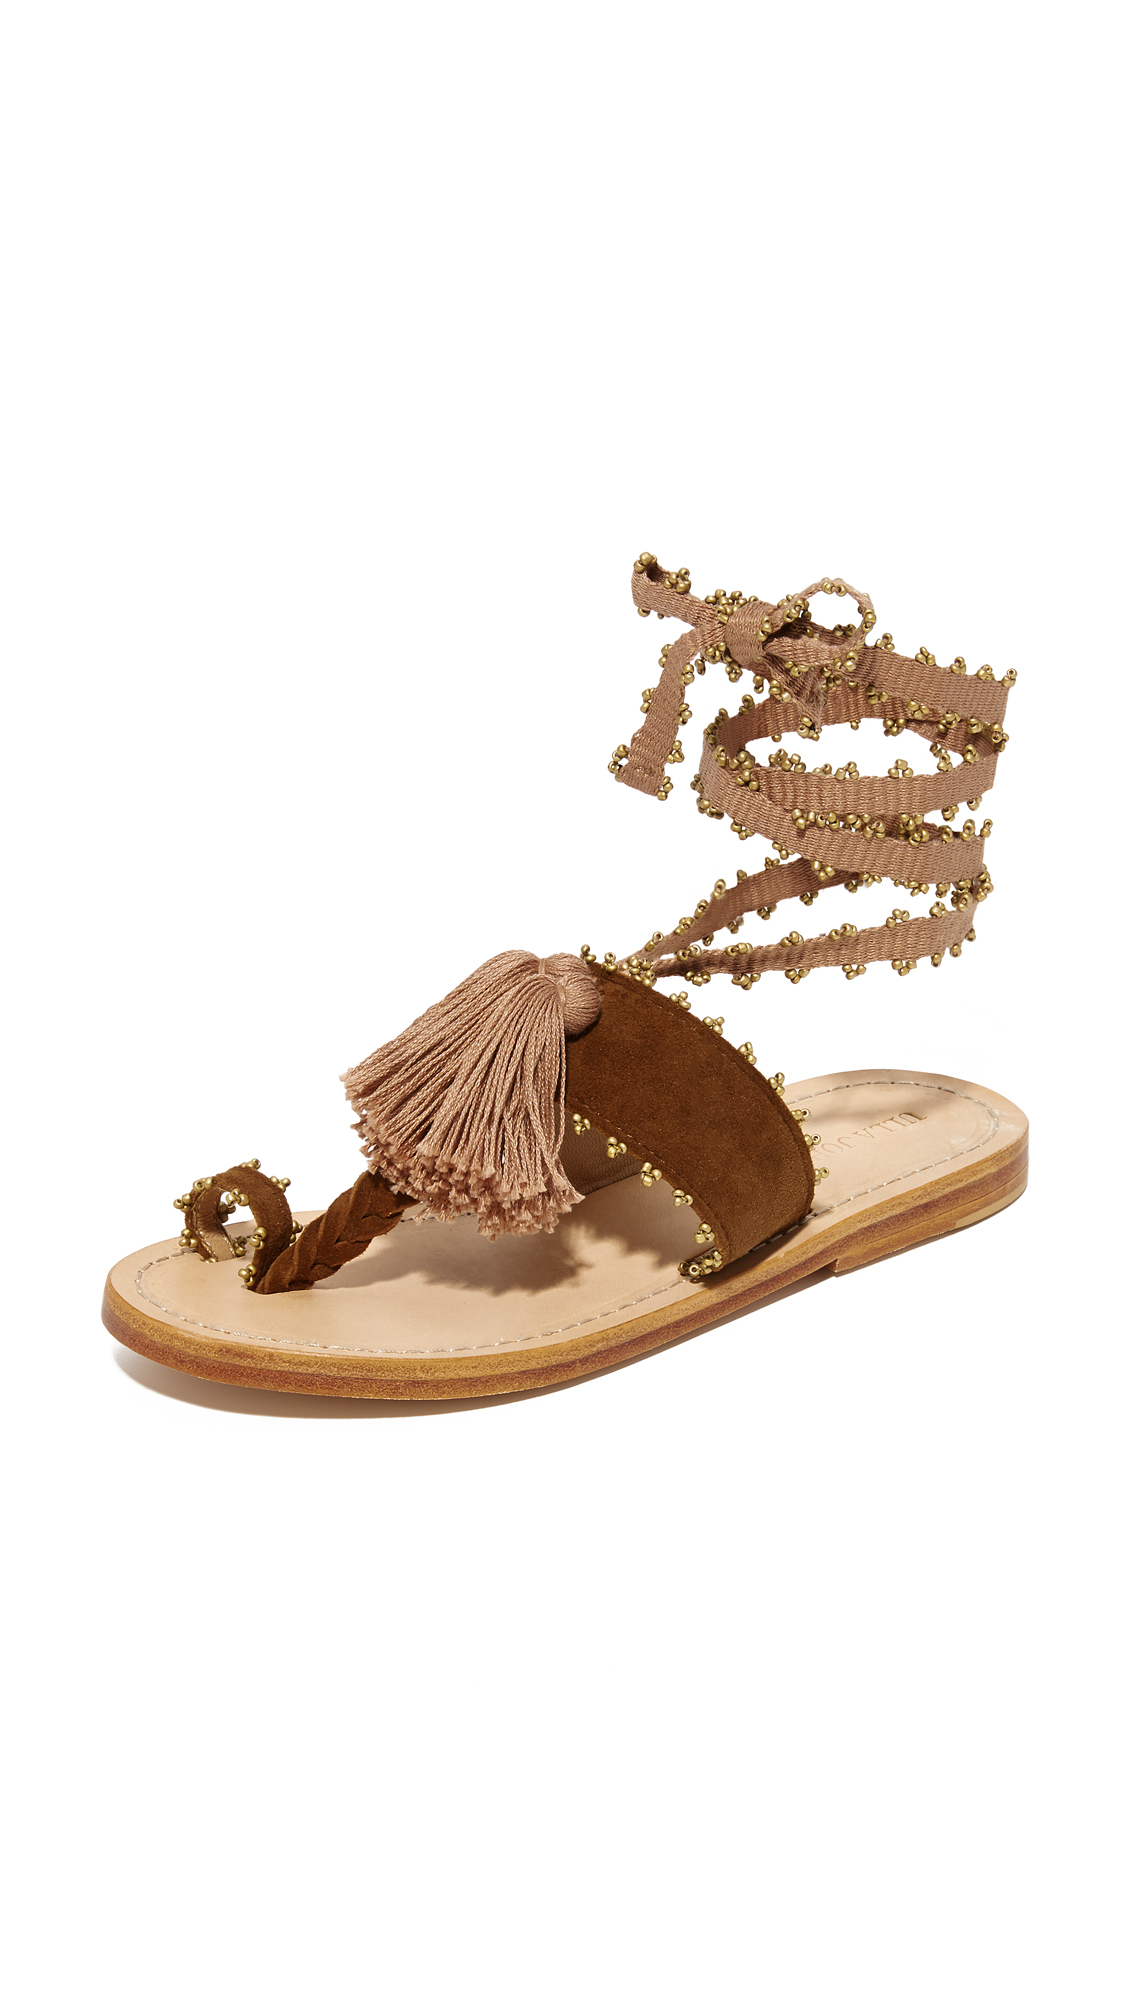 Ulla Johnson Zandra Sandals - Saddle